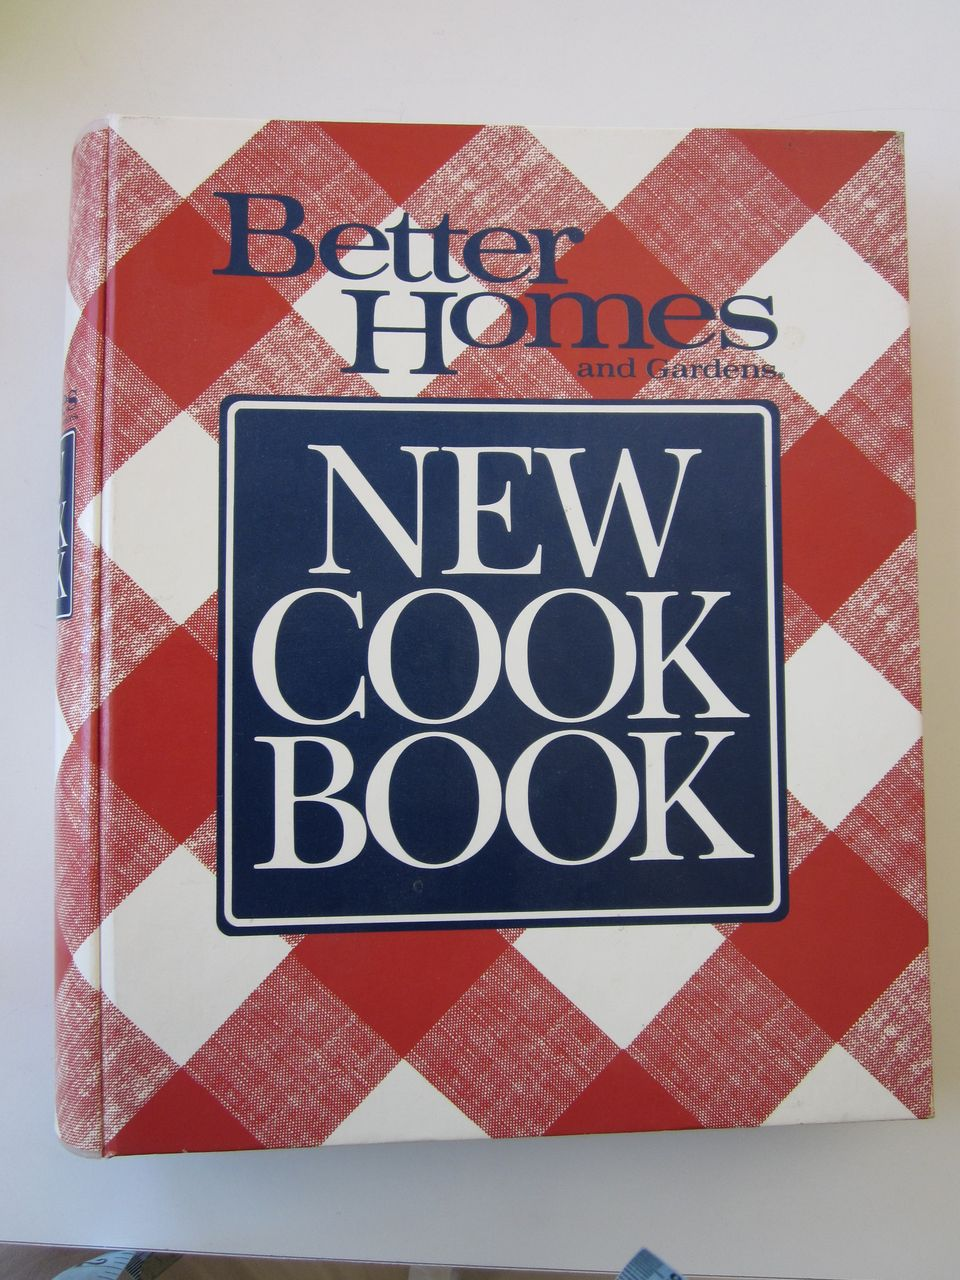 1989 Better Homes and Gardens New Cook Book, 5 Ring Binder, Very Clean Copy